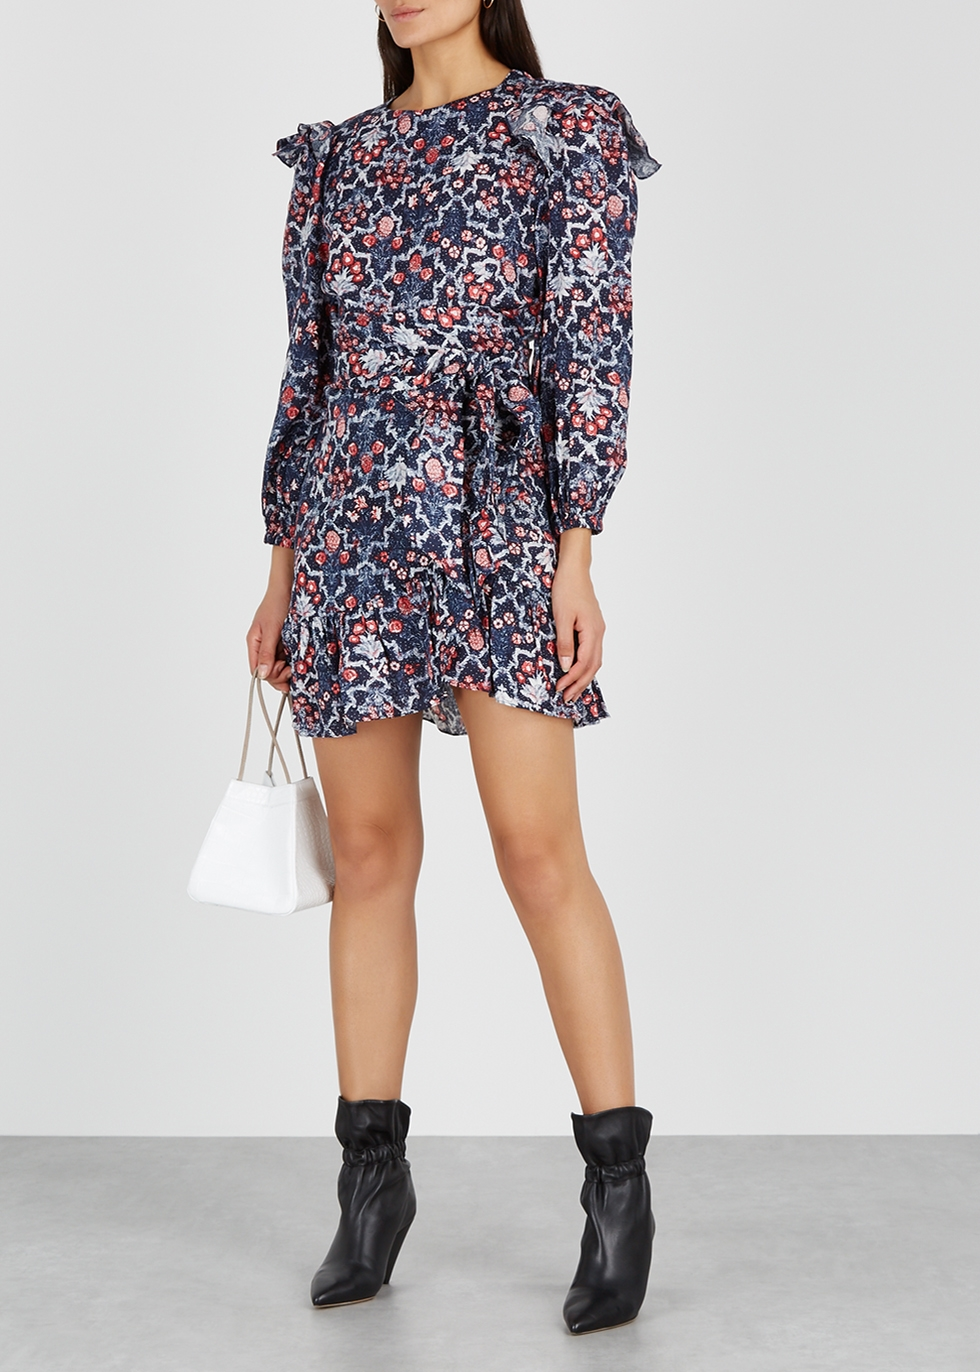 Telicia printed linen mini dress - Isabel Marant Étoile